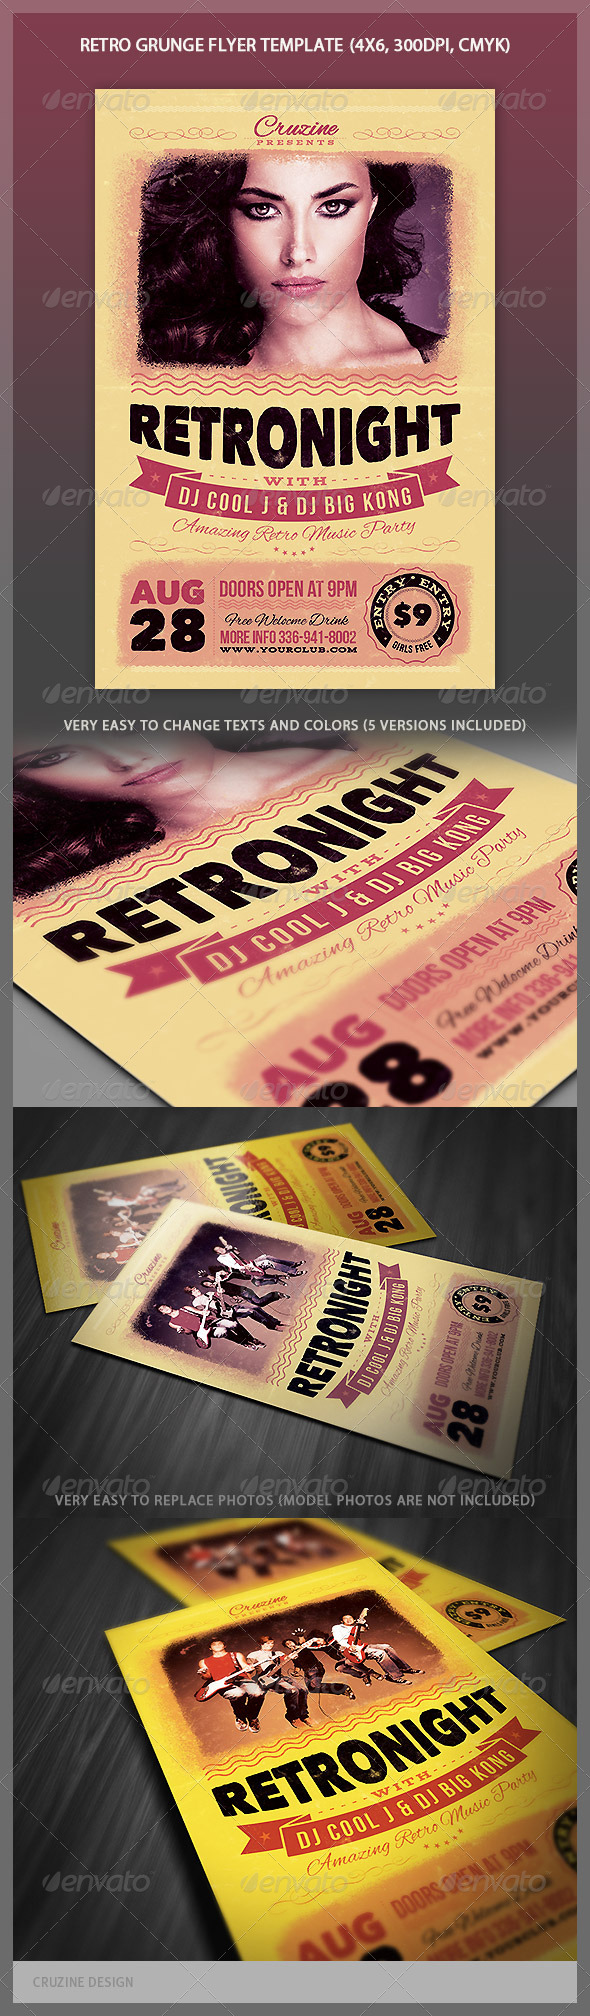 Retro Grunge Flyer - Events Flyers